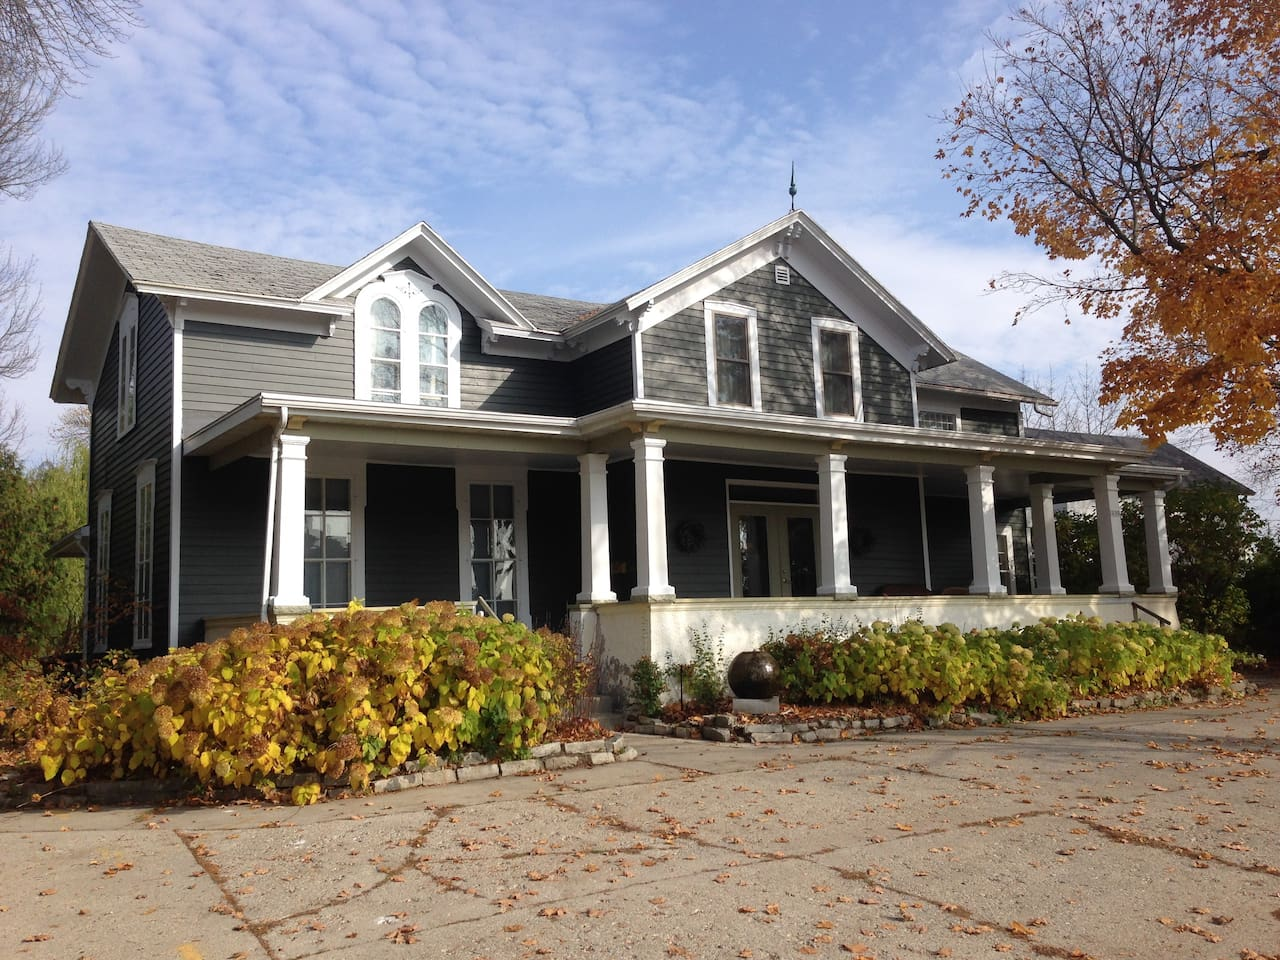 Our beautiful home in Sturgeon Bay WI.